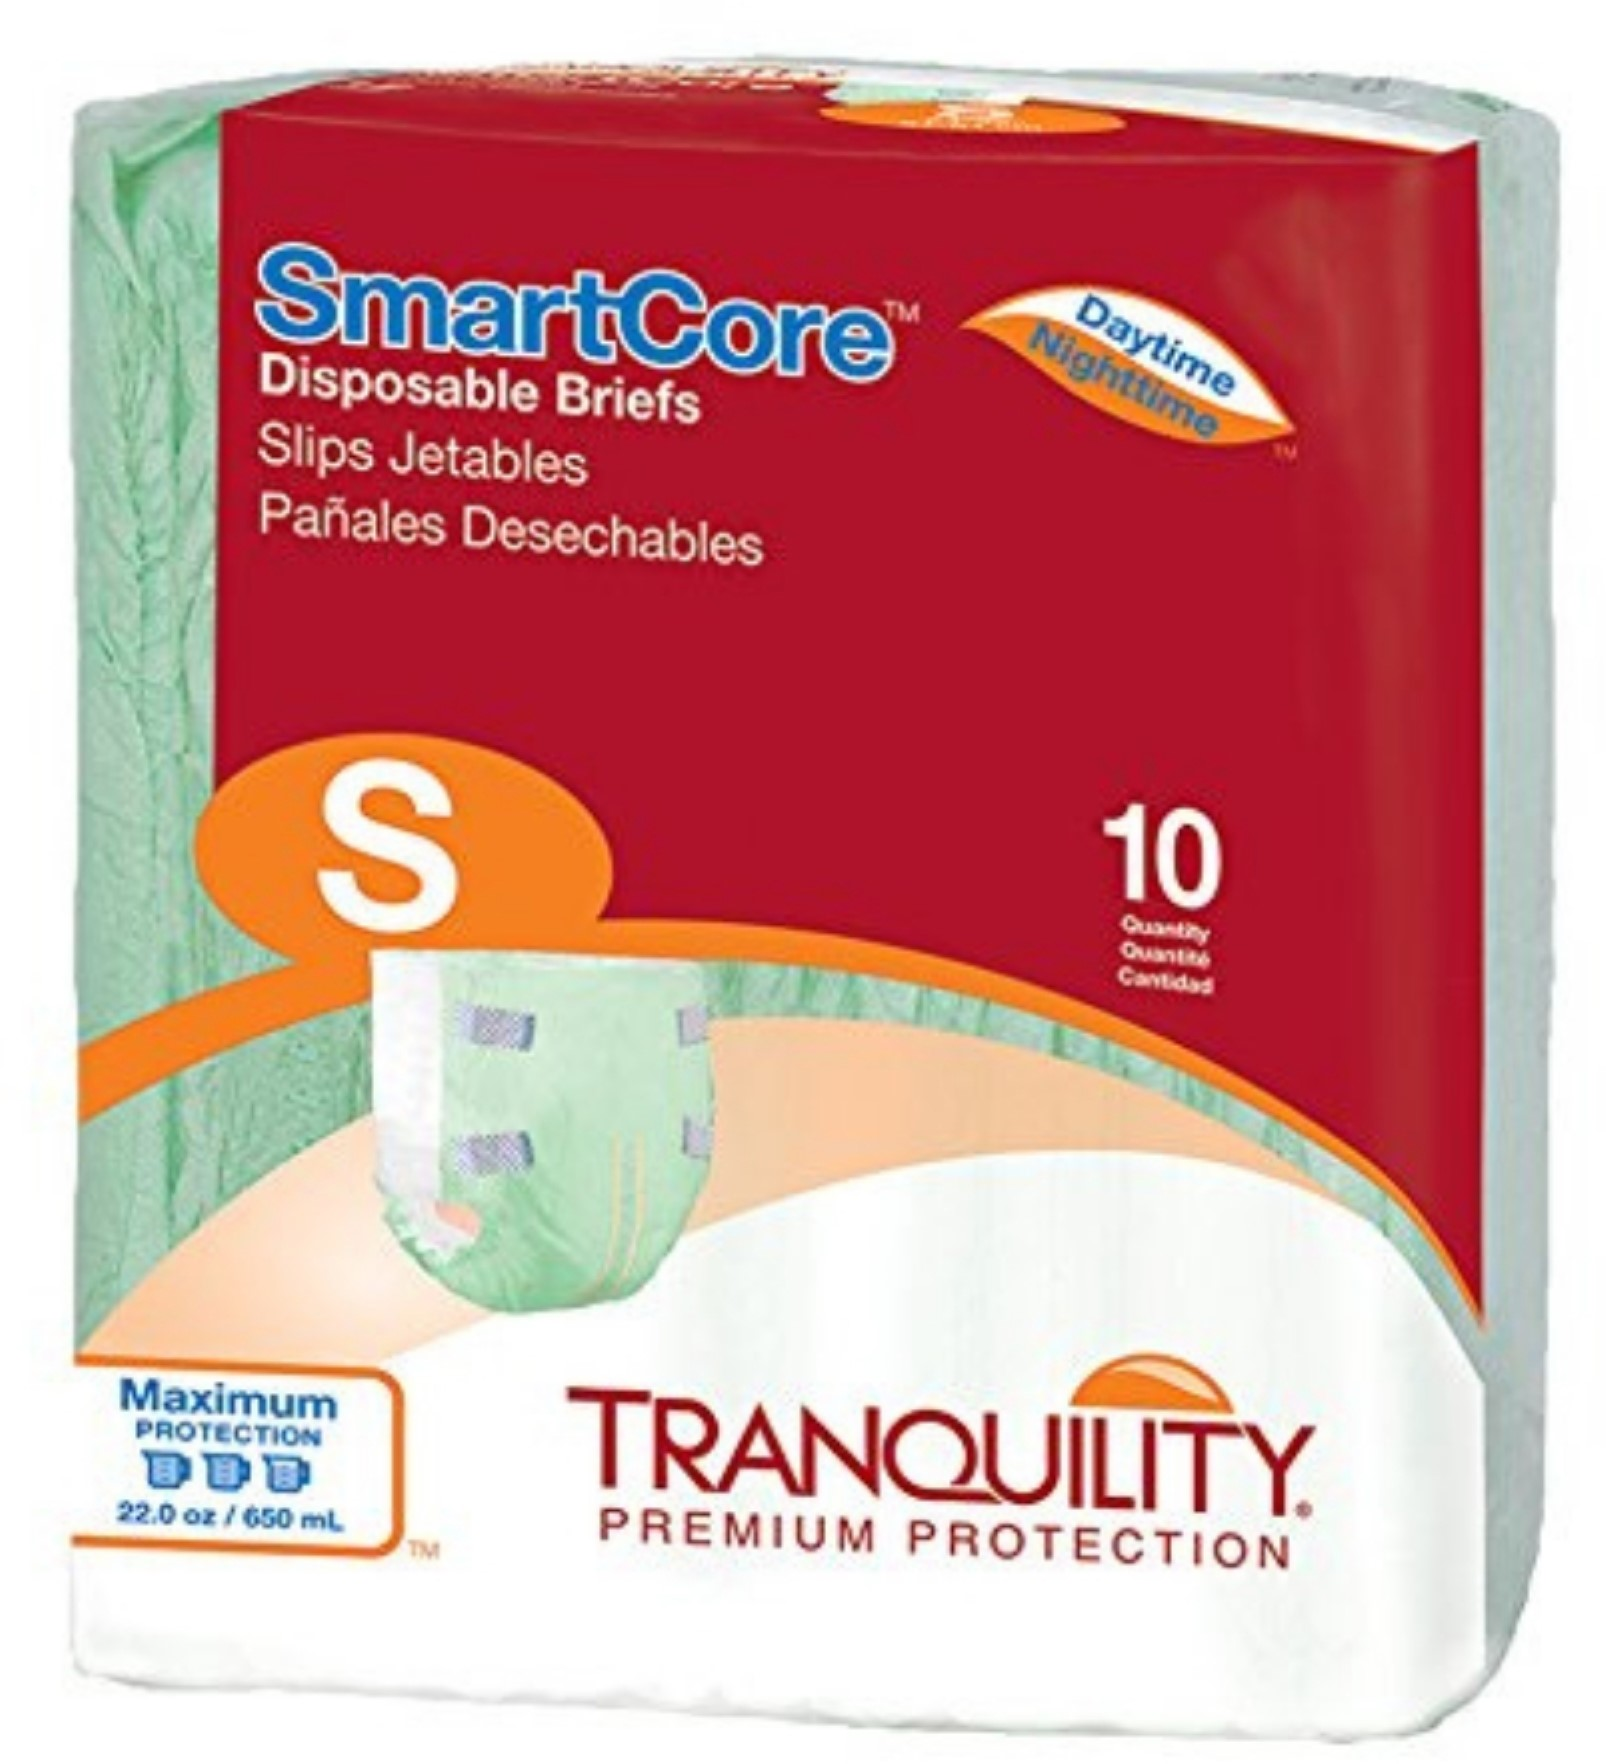 Adult Incontinent Brief Tranquility SmartCore Tab Closure Small Disposable Heavy Absorbency - 10 ea